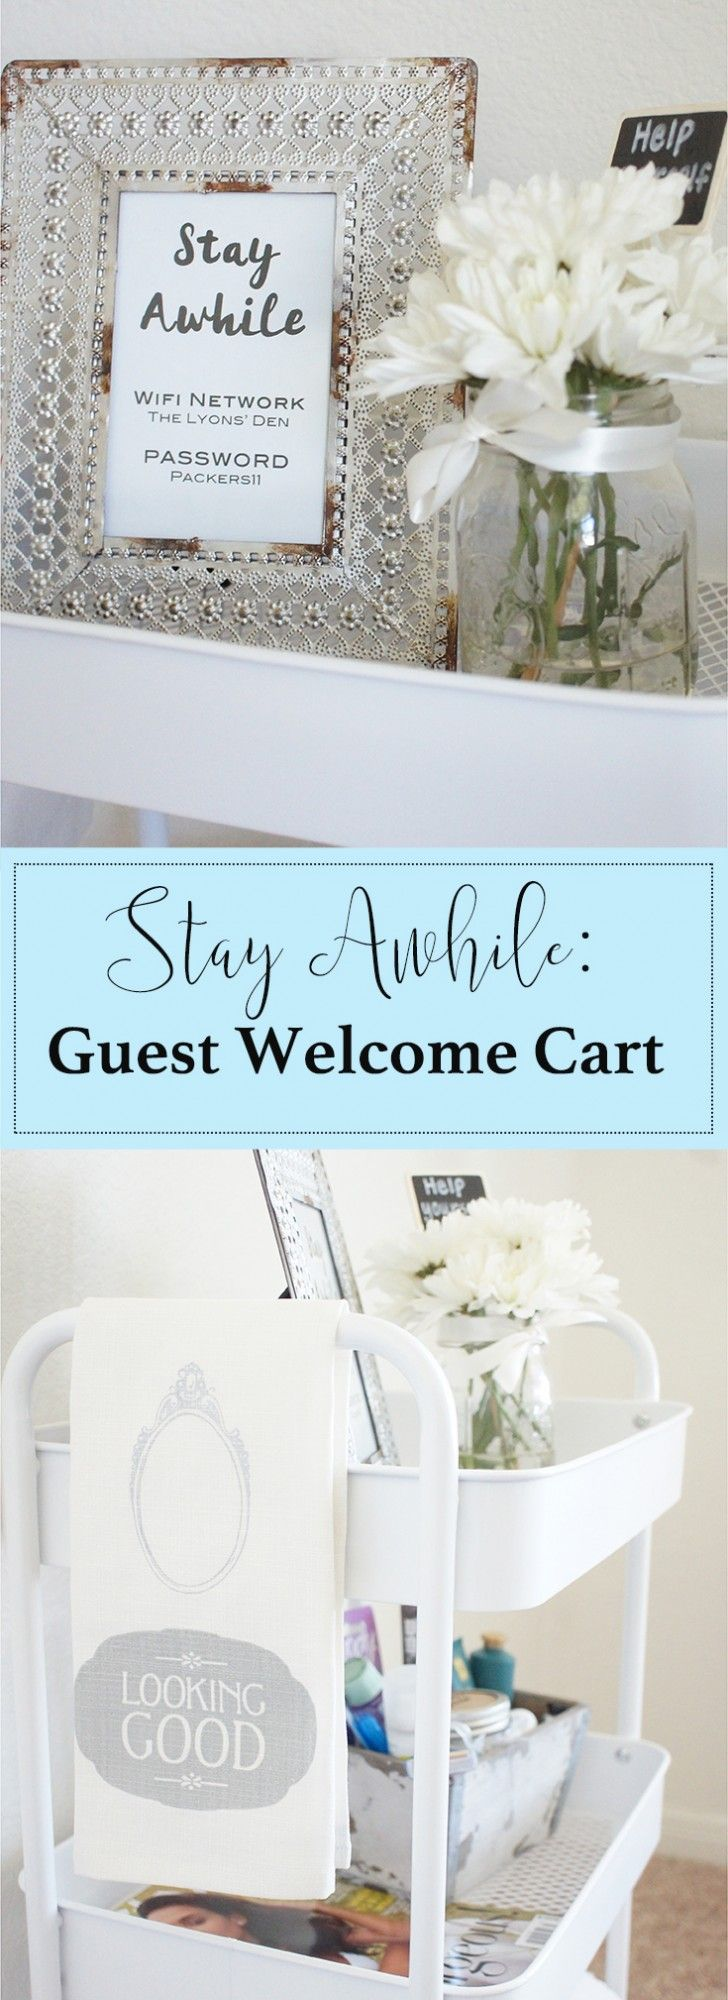 Design a guest cart for your guest bedroom! Kind of love this idea, makes the house feel more homie.